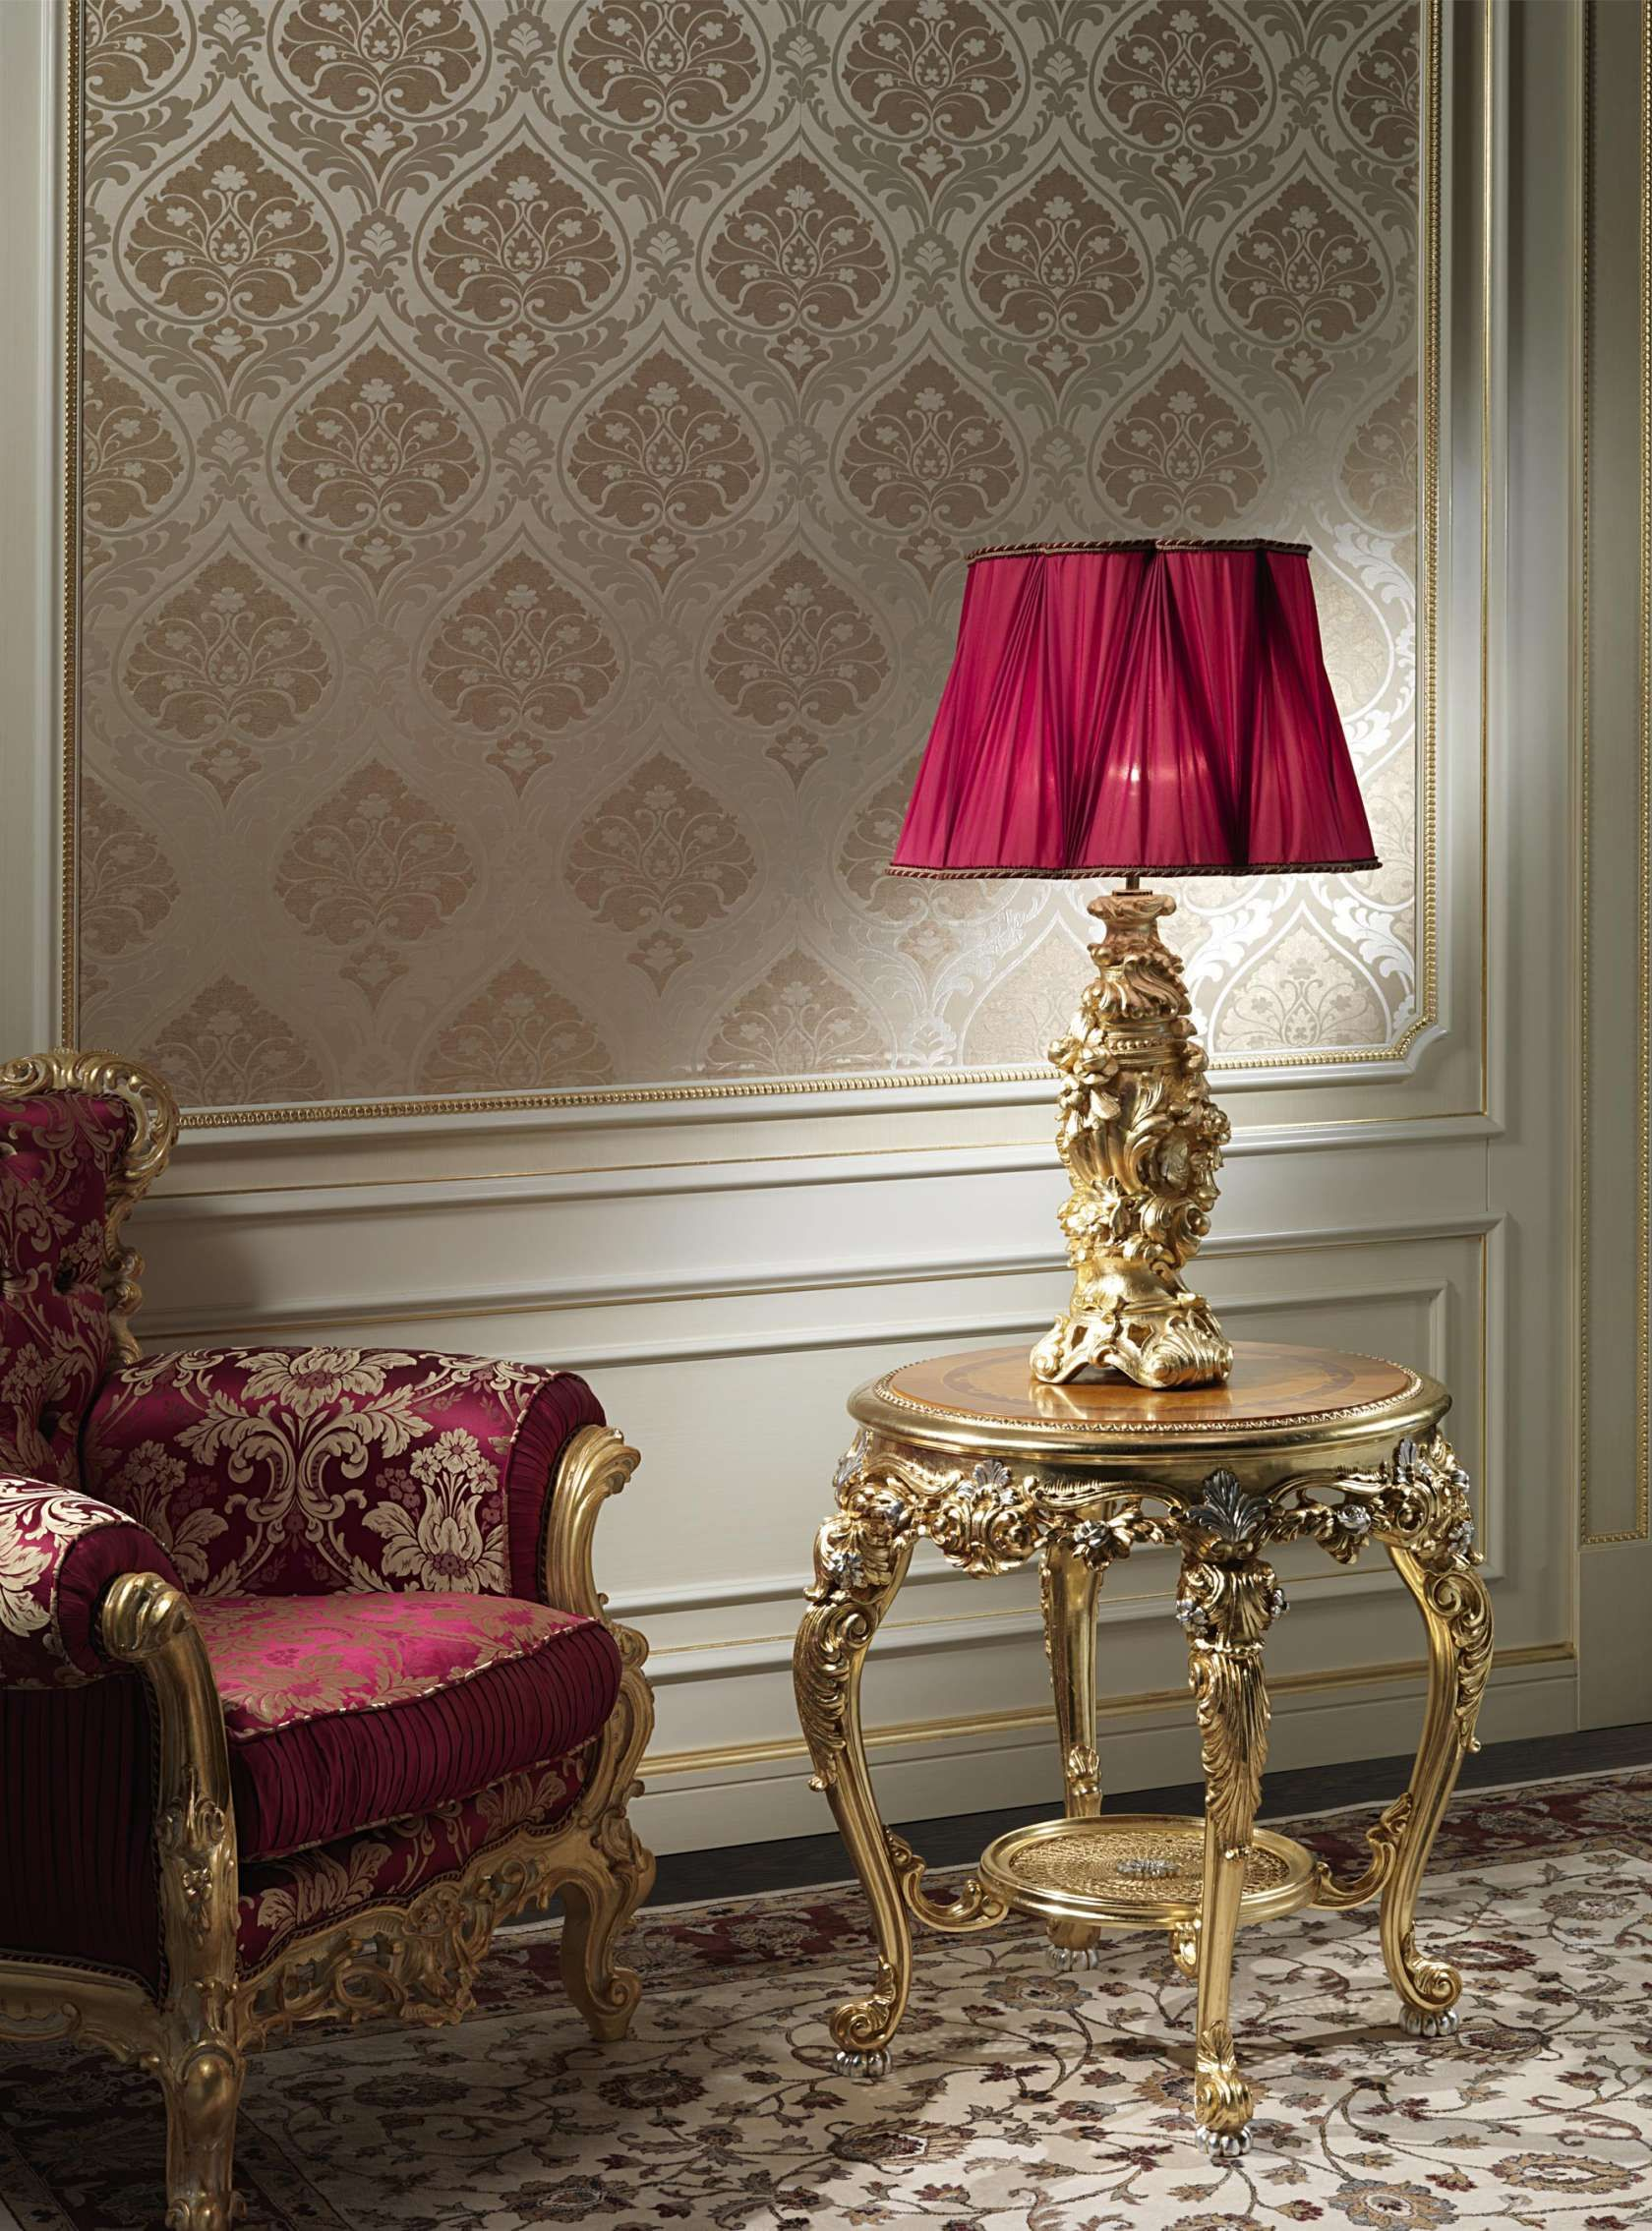 Classic Furniture, Luxury Furniture, Furniture Design, Baroque Furniture,  Italian Furniture, Classic